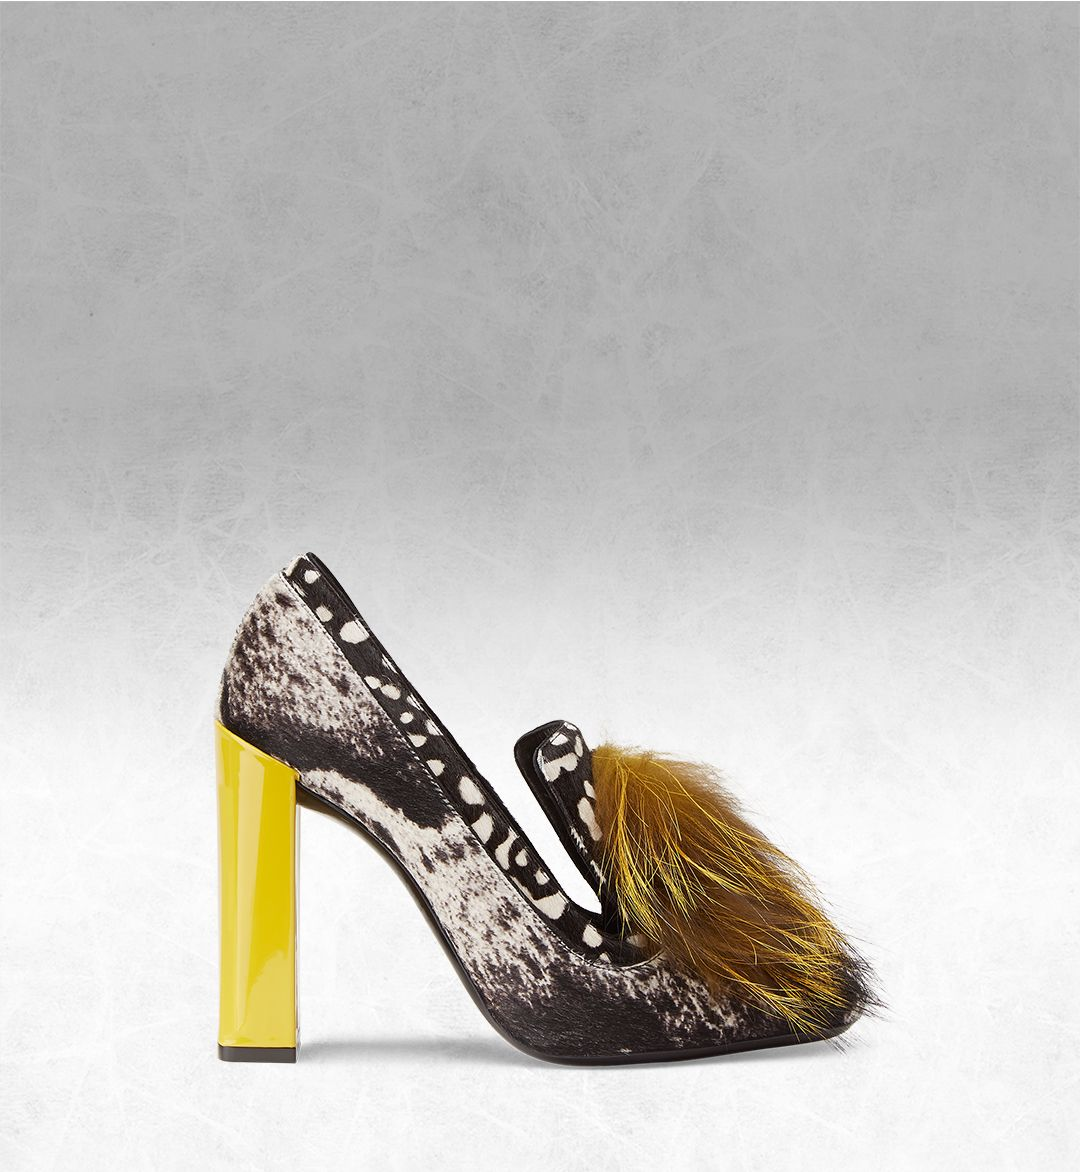 The new Fendi Fall/Winter 2014-15 pumps